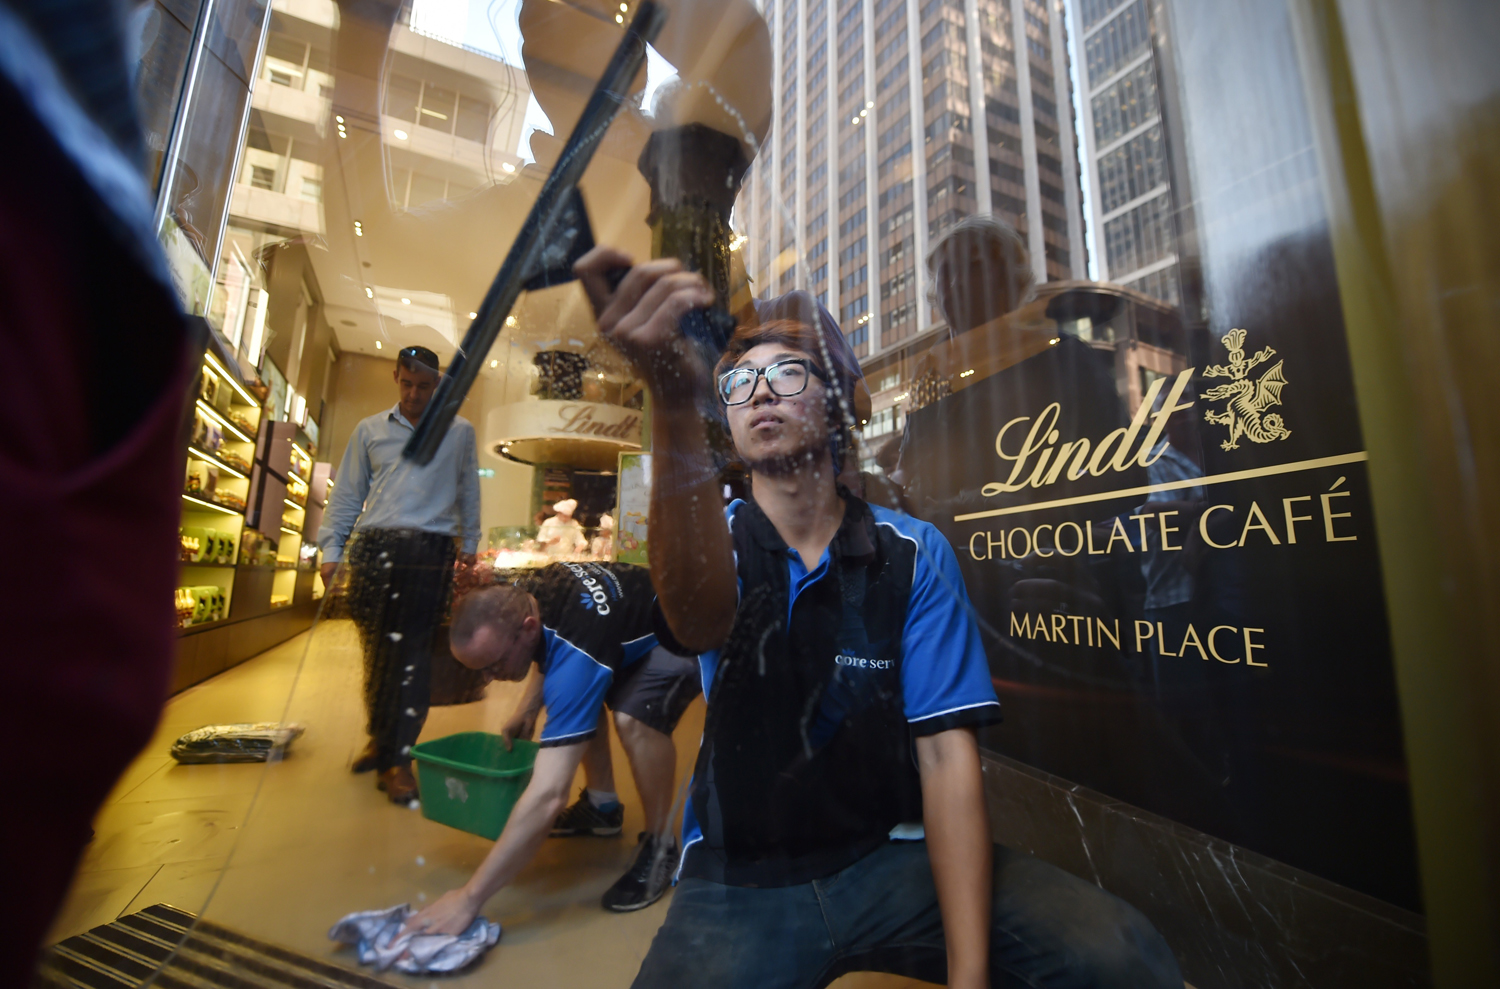 A staff member cleans the front door windows ahead of the re-opening of the Lindt Cafe at Martin Place in Sydney on March 20, 2015.